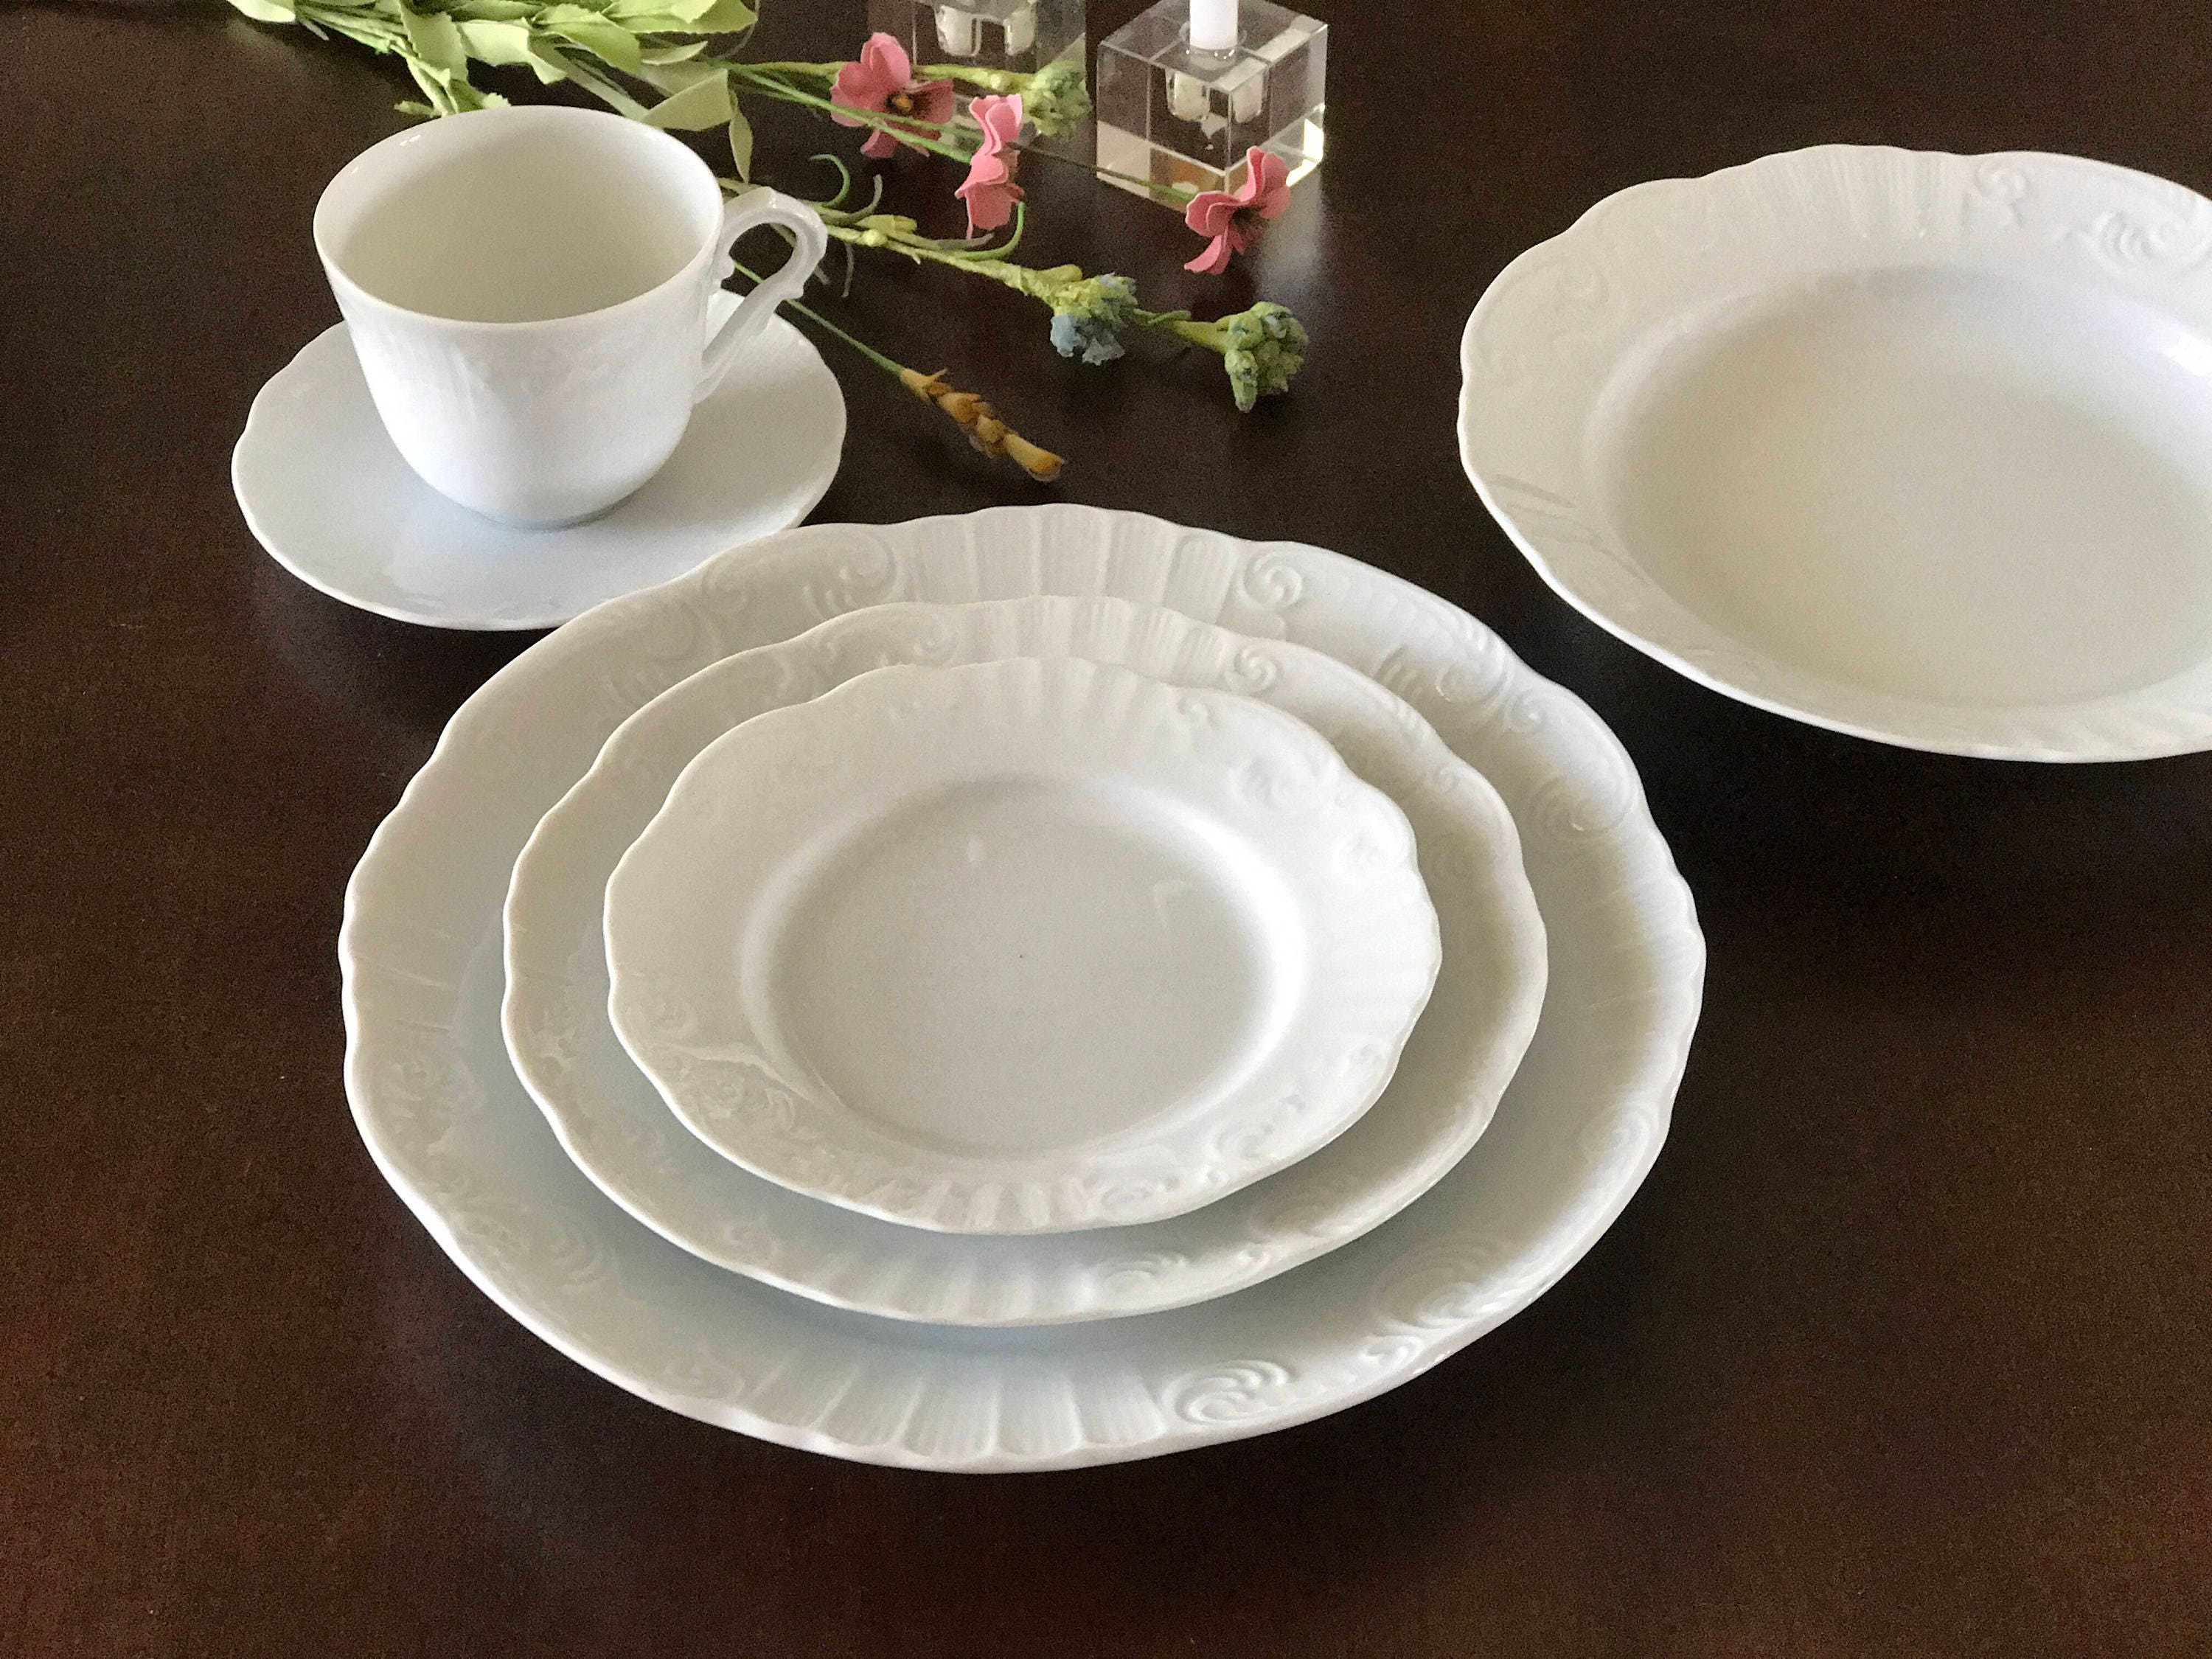 42 Piece Fine Porcelain Dinnerware Set; Vista Alegre Manueline White made in Portugal & 42 Piece Fine Porcelain Dinnerware Set; Vista Alegre Manueline White ...